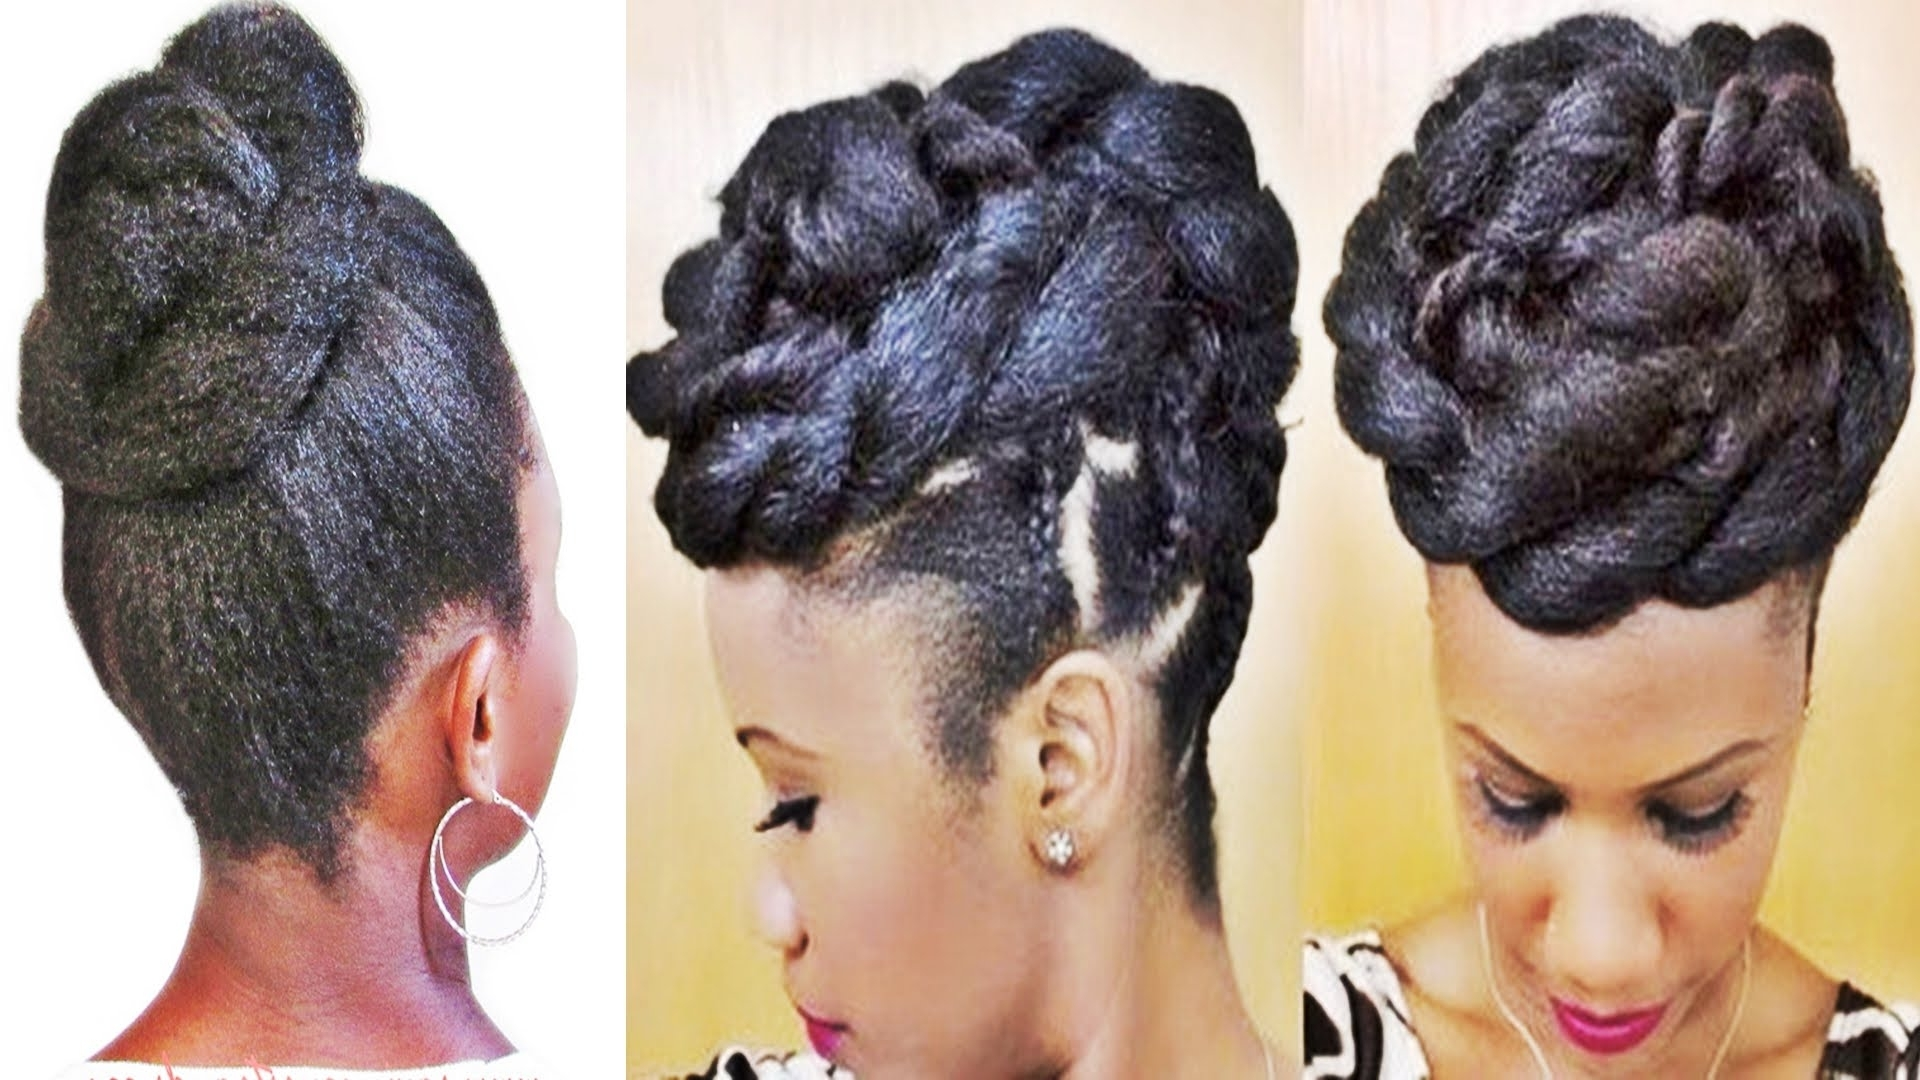 Braids And Twists Updo Hairstyle For Black Women – Youtube For Braided Hair Updo Hairstyles (View 4 of 15)